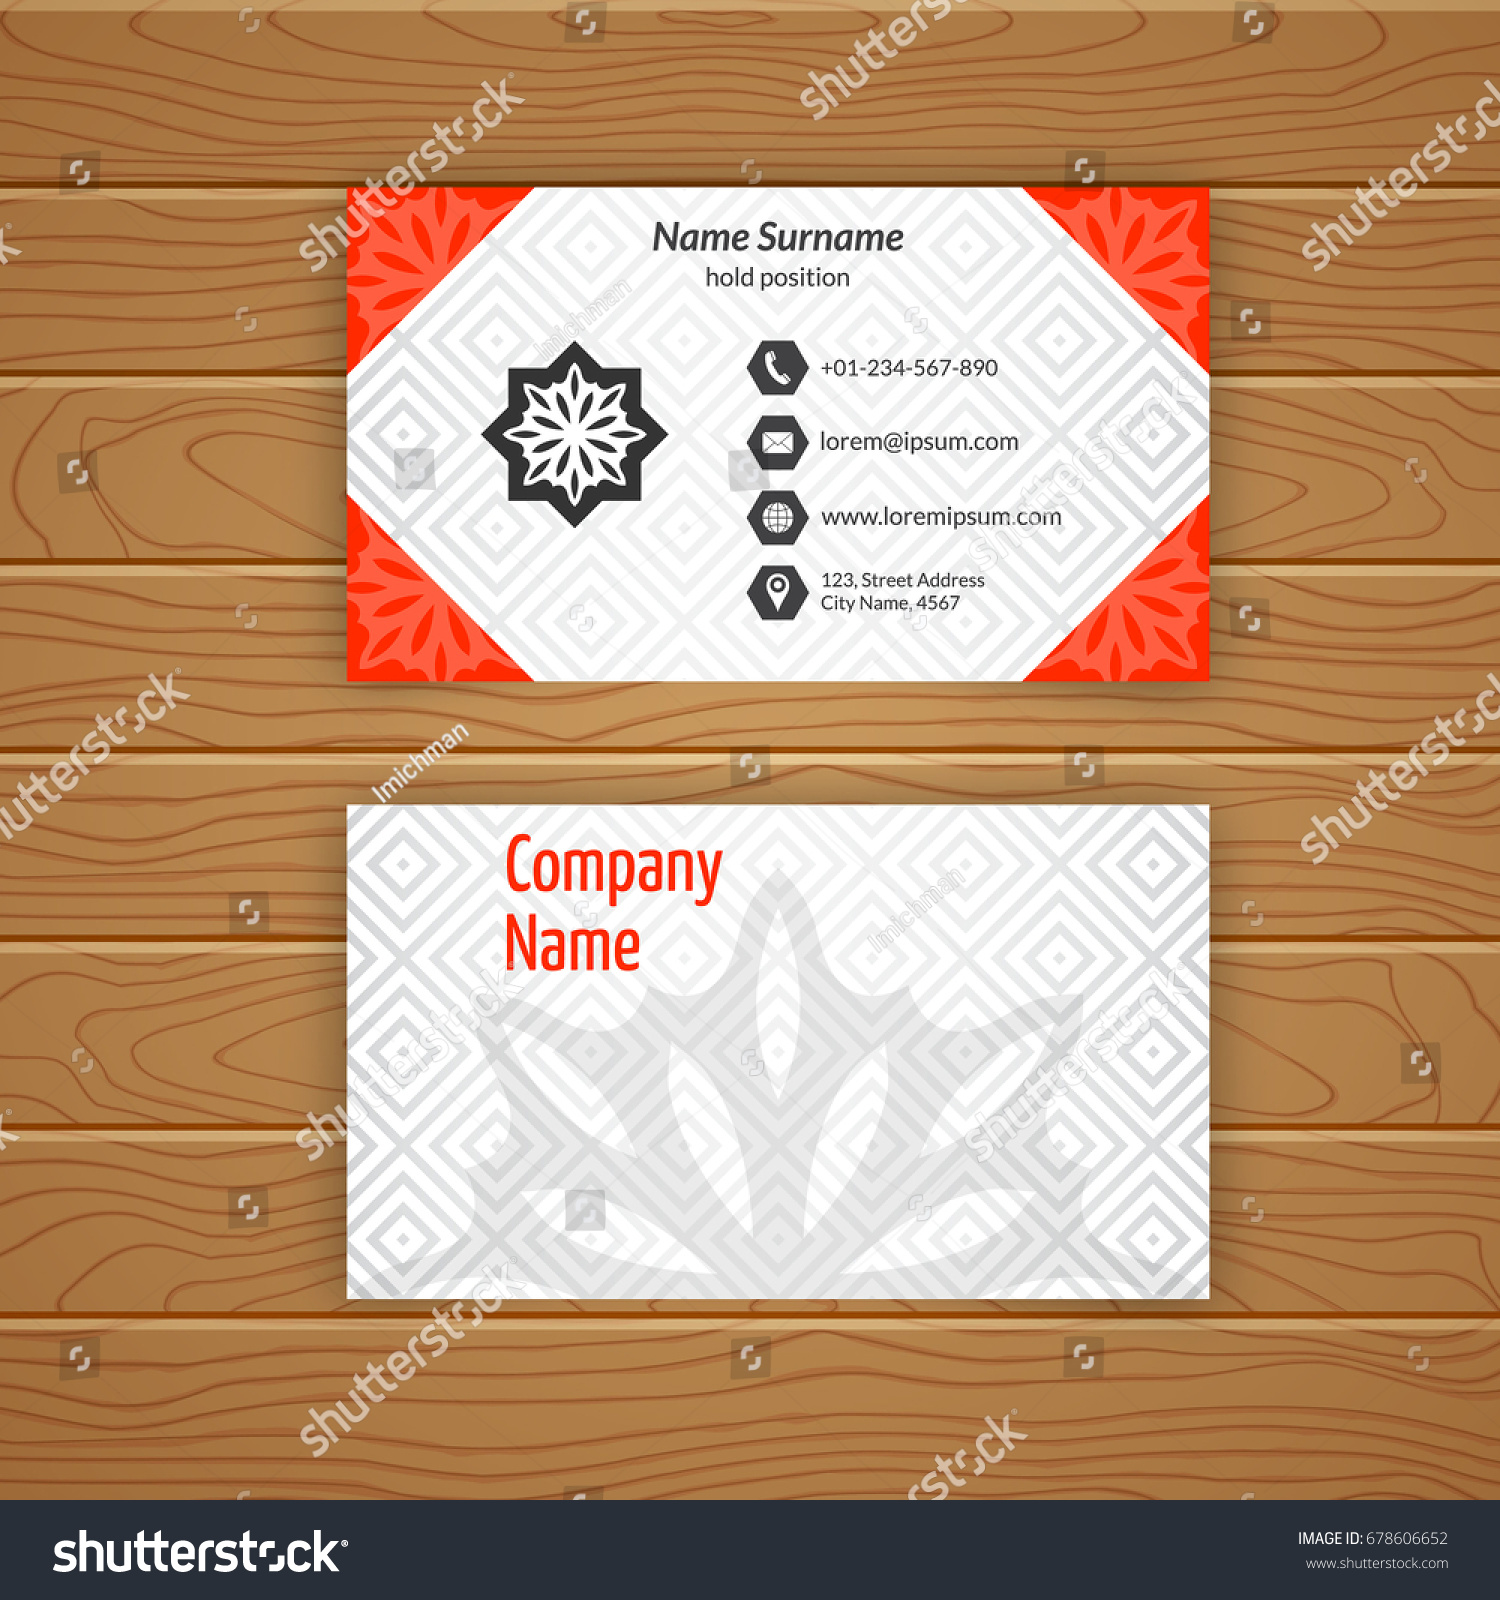 Business card blank template textured background stock vector business card blank template with textured background from diamond tiles minimal elegant vector design wajeb Choice Image